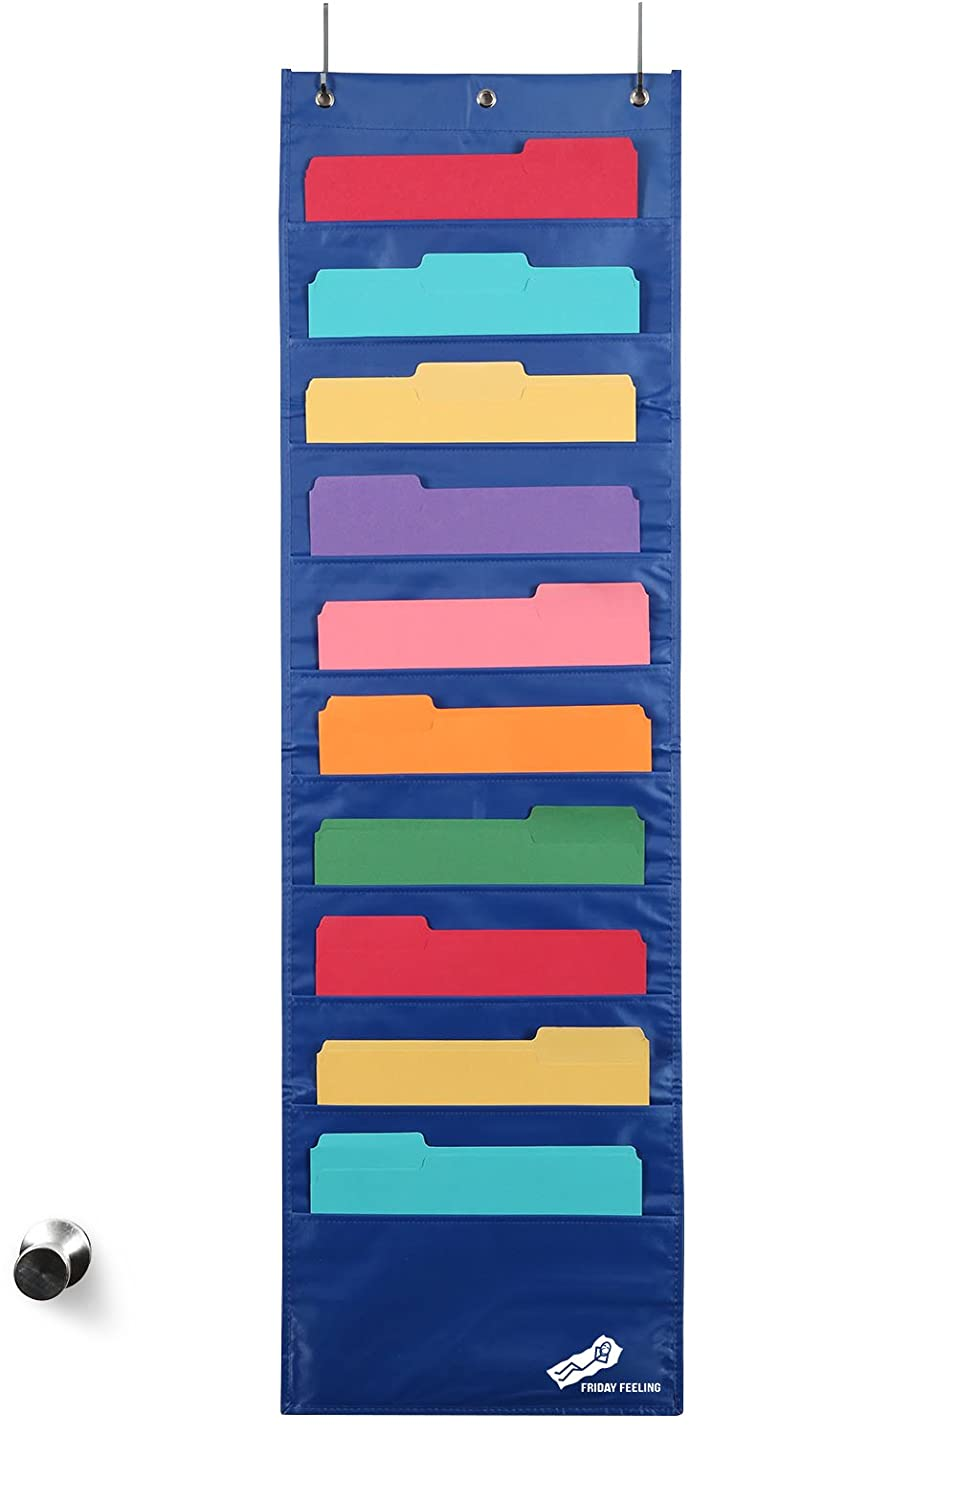 Wall Hanging File Holder Office Organizer + 2 Hangers; Wall Or Over Door Mount [Blue] Friday Feeling